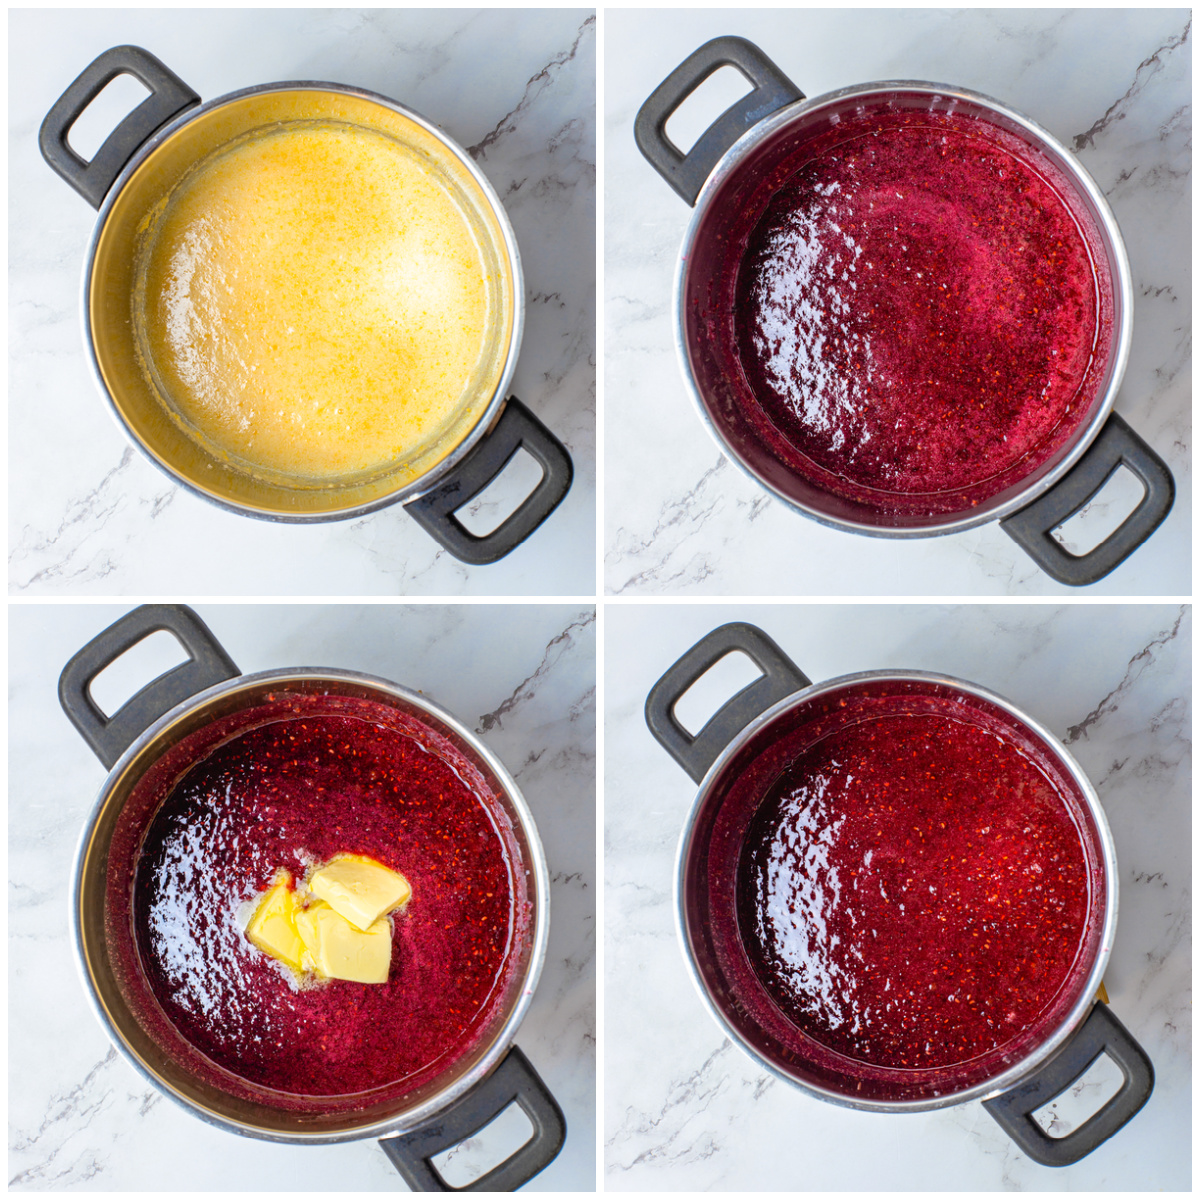 Step by step photos on how to make Raspberry Curd